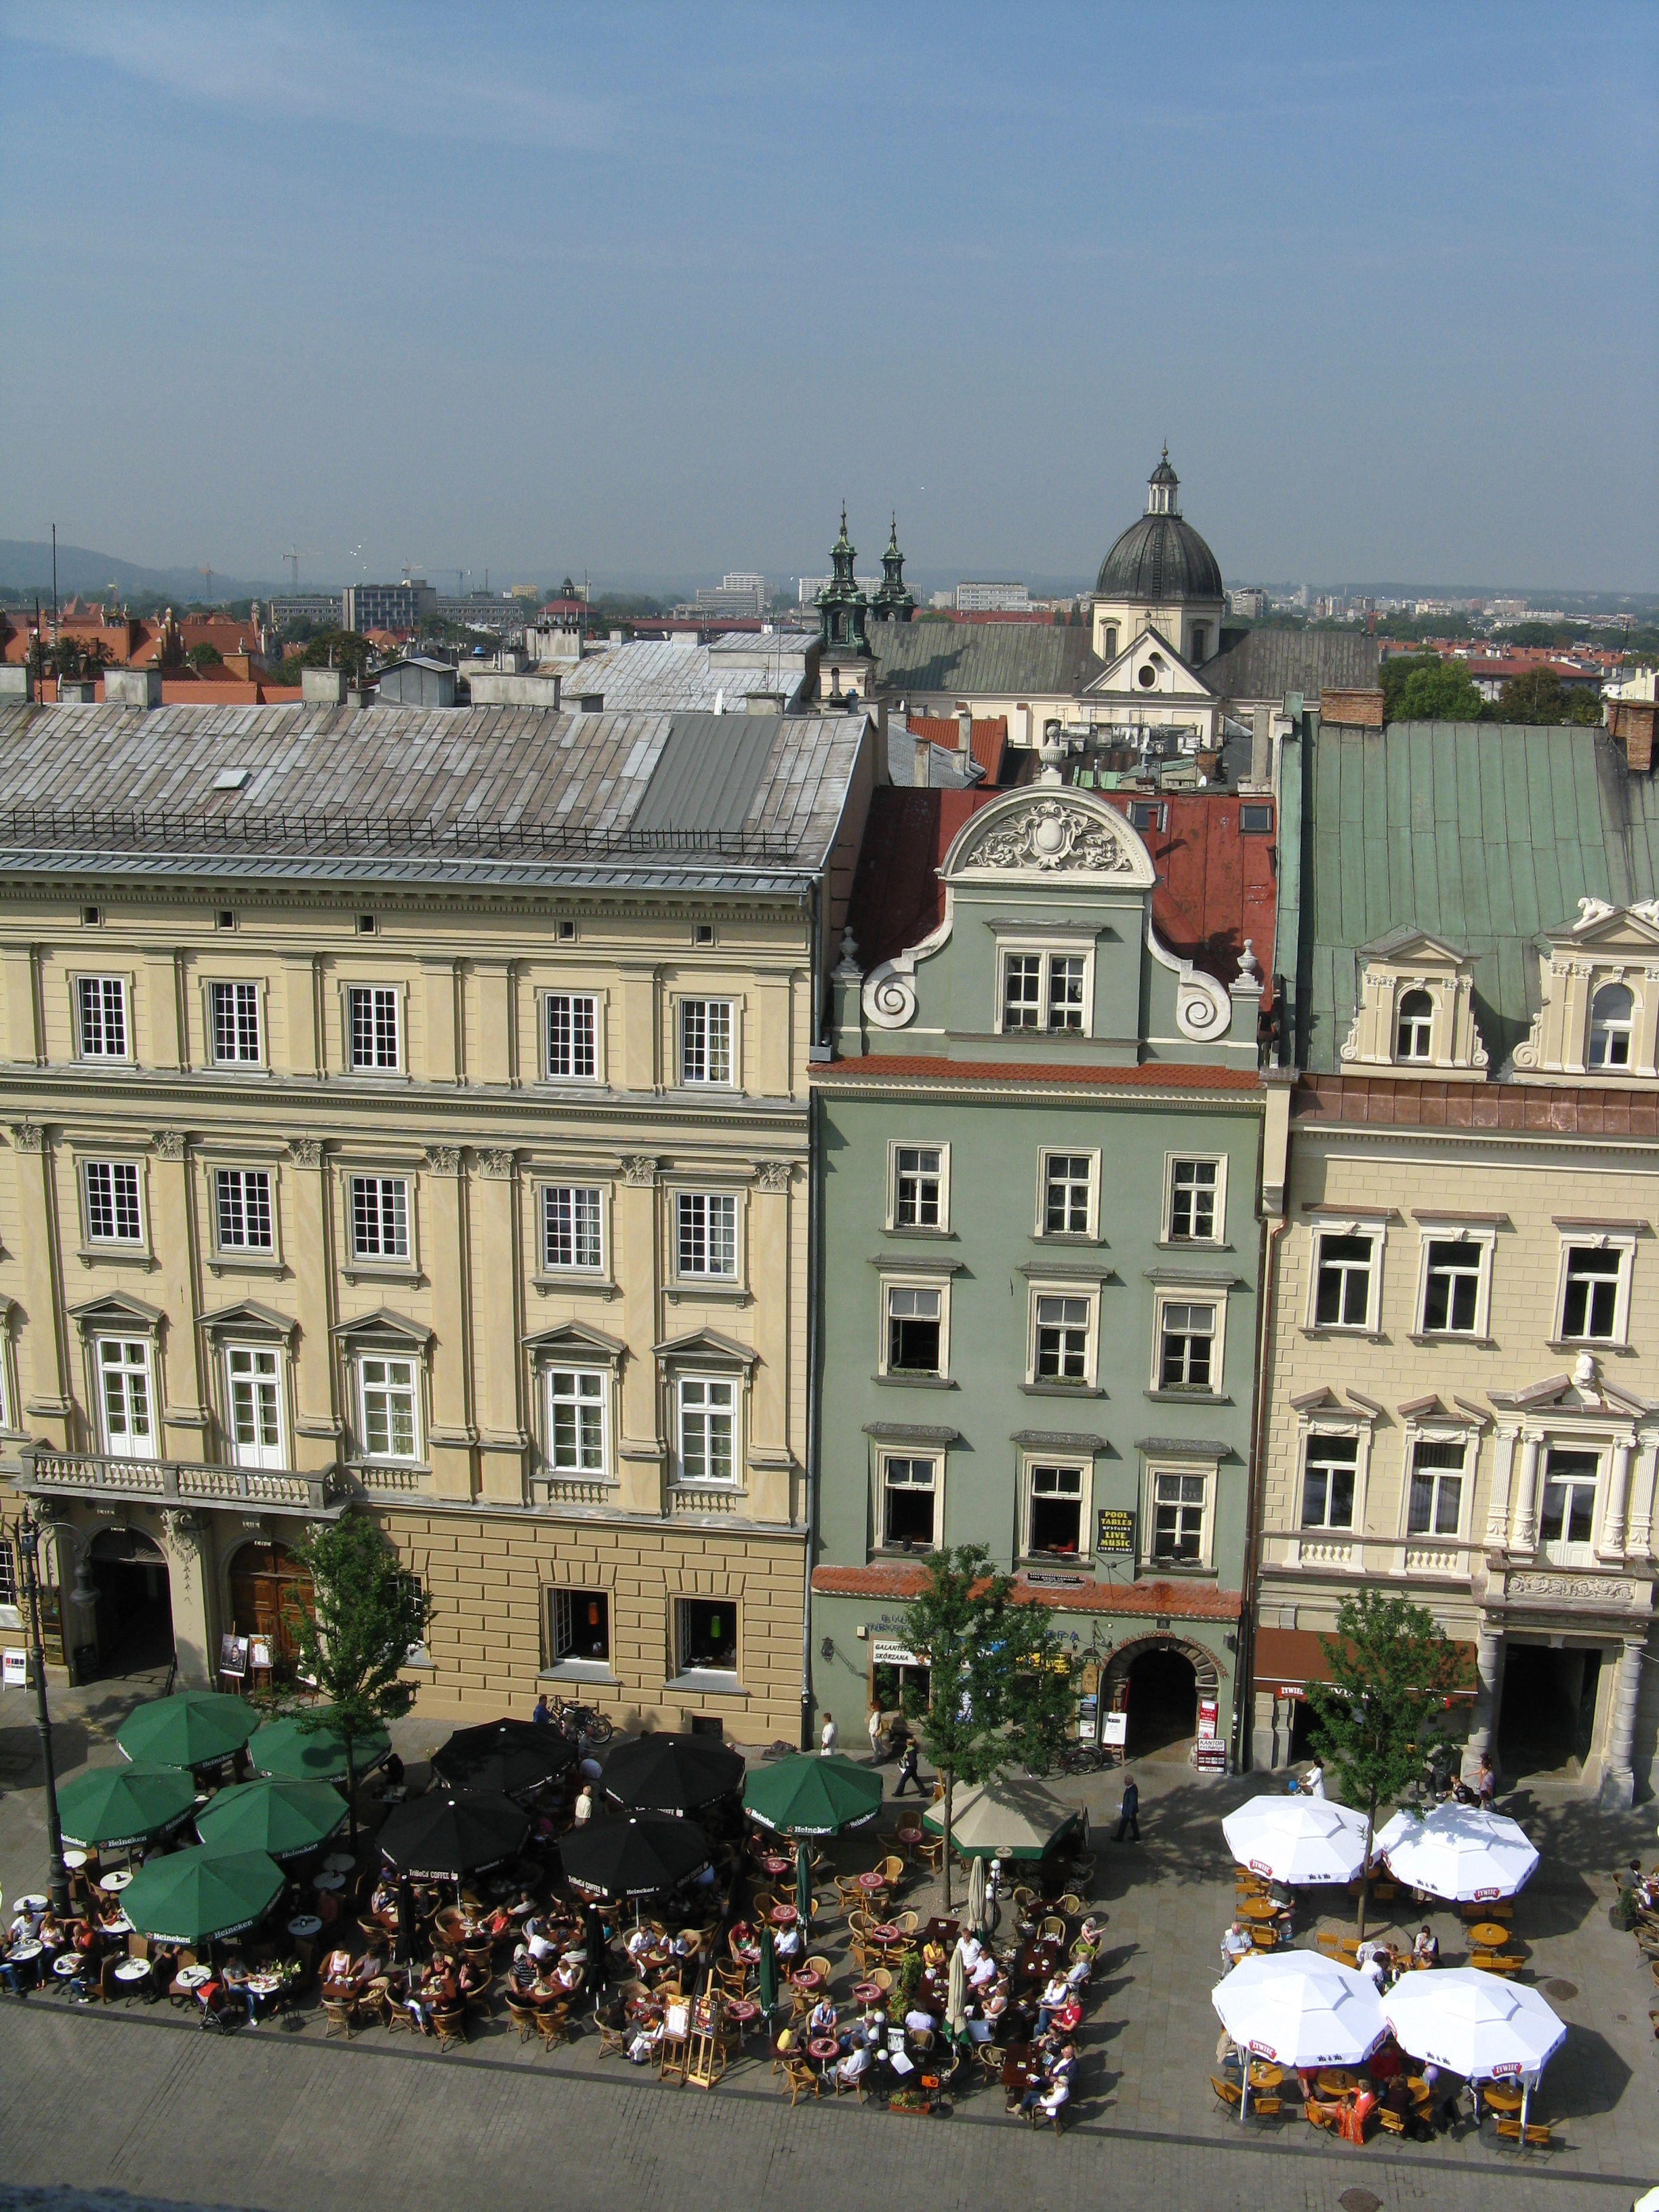 Rynek Glowny as viewed from the top of the old town hall's tower